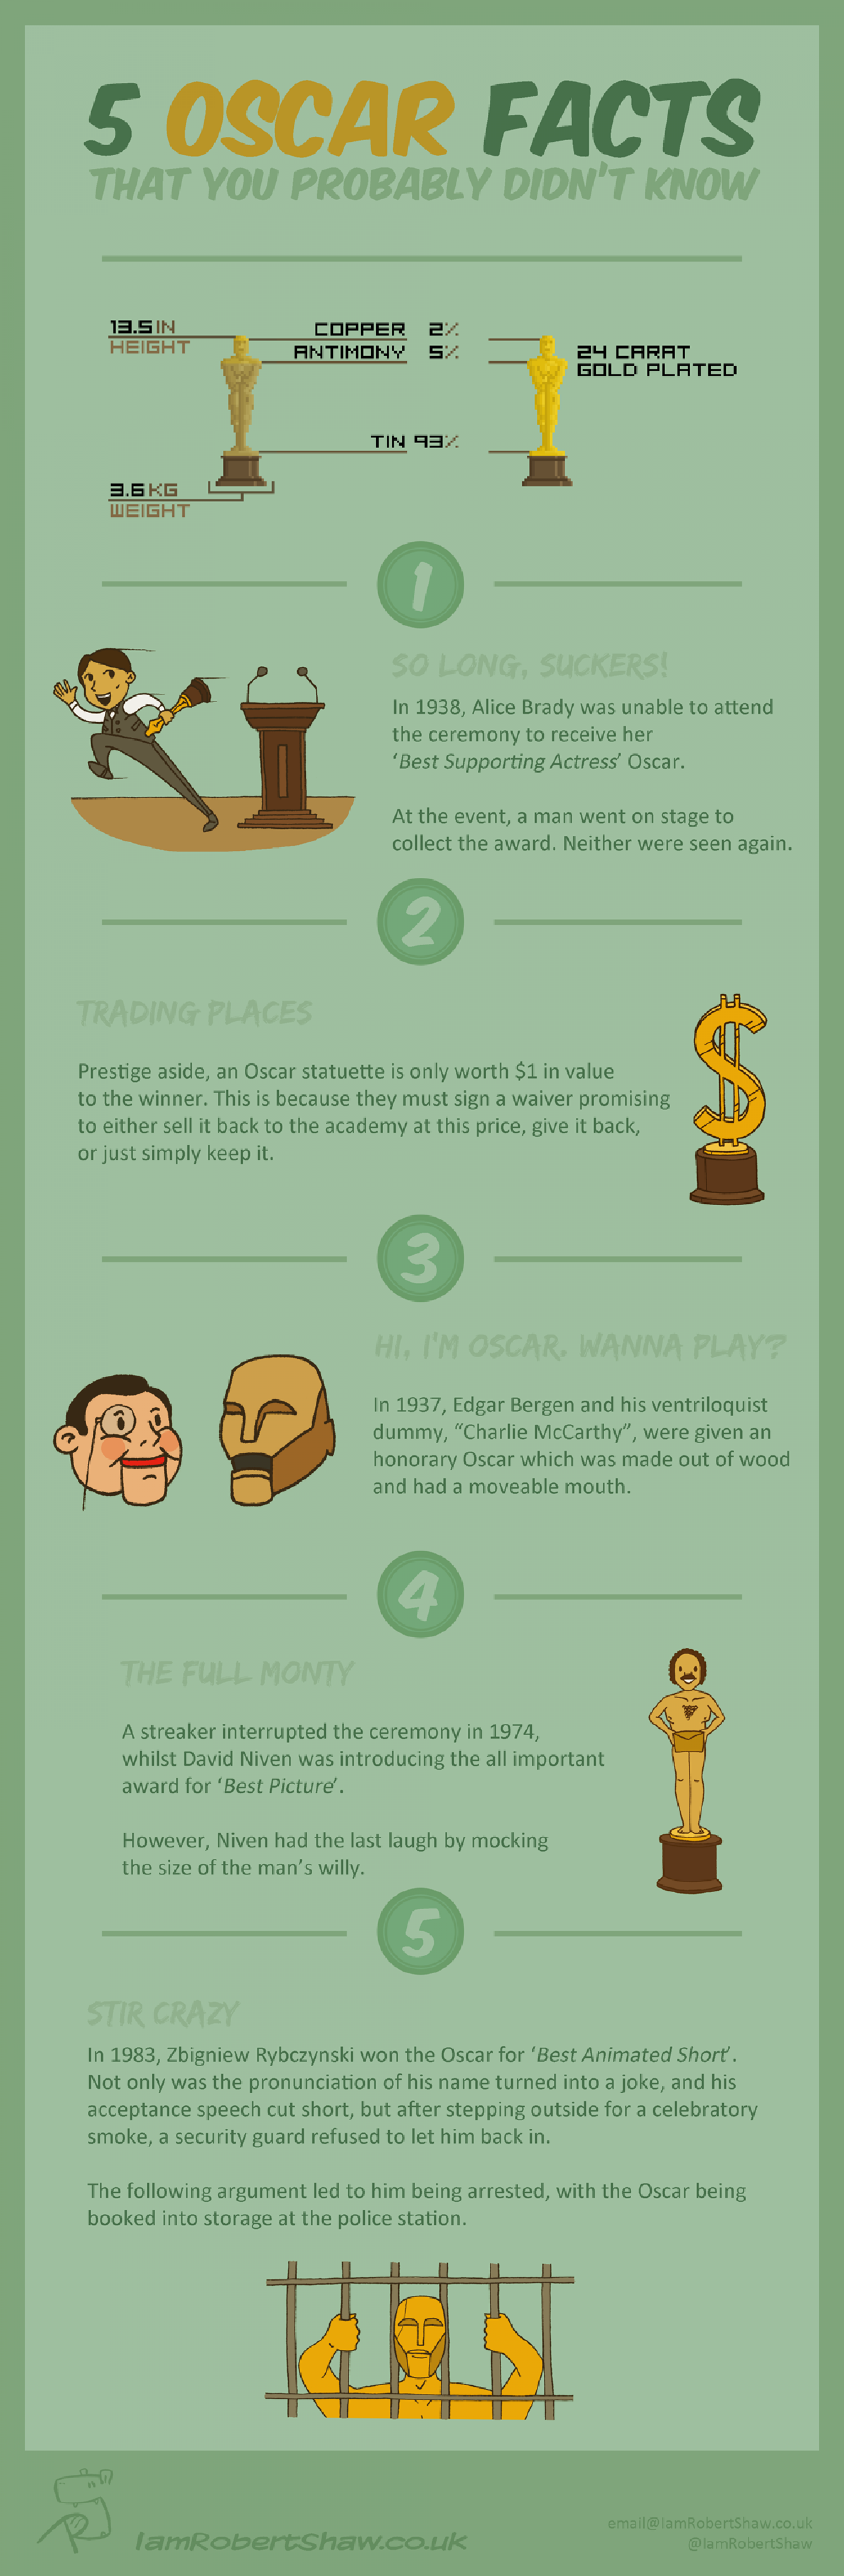 5 Oscar Facts Infographic